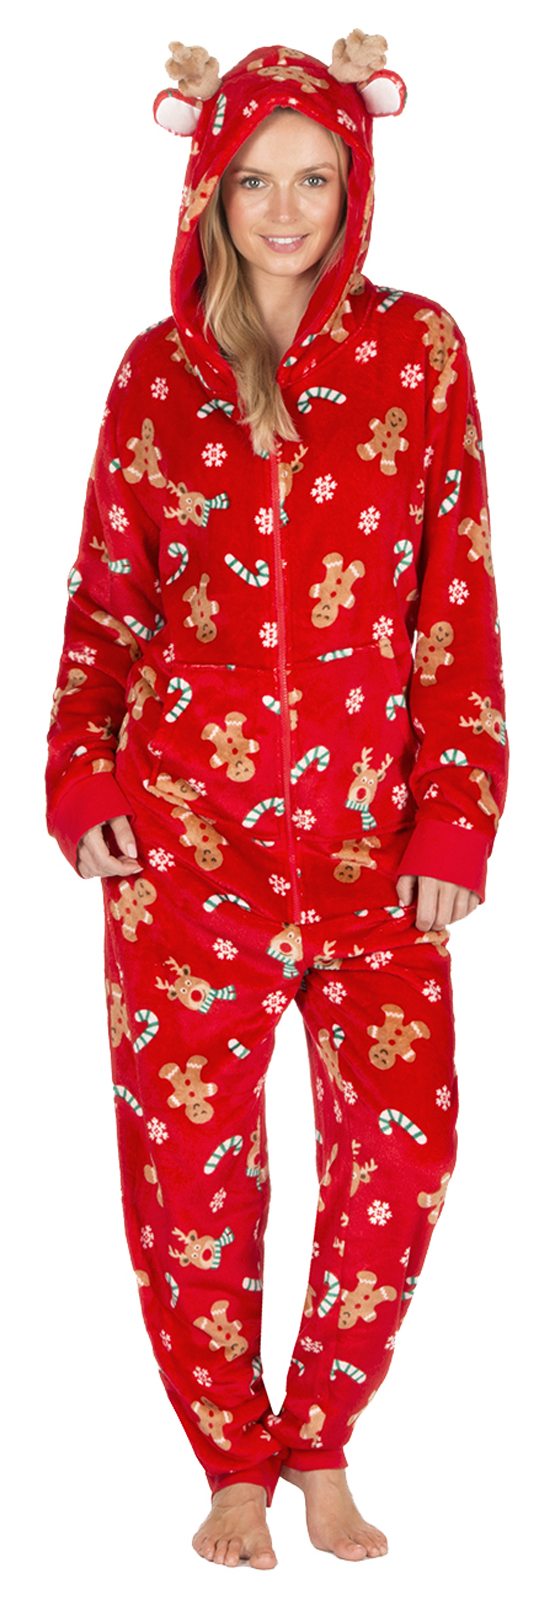 Womens Novelty Christmas Dressing Gown Onezie Xmas All In One Fleece ... ebf5e69f4